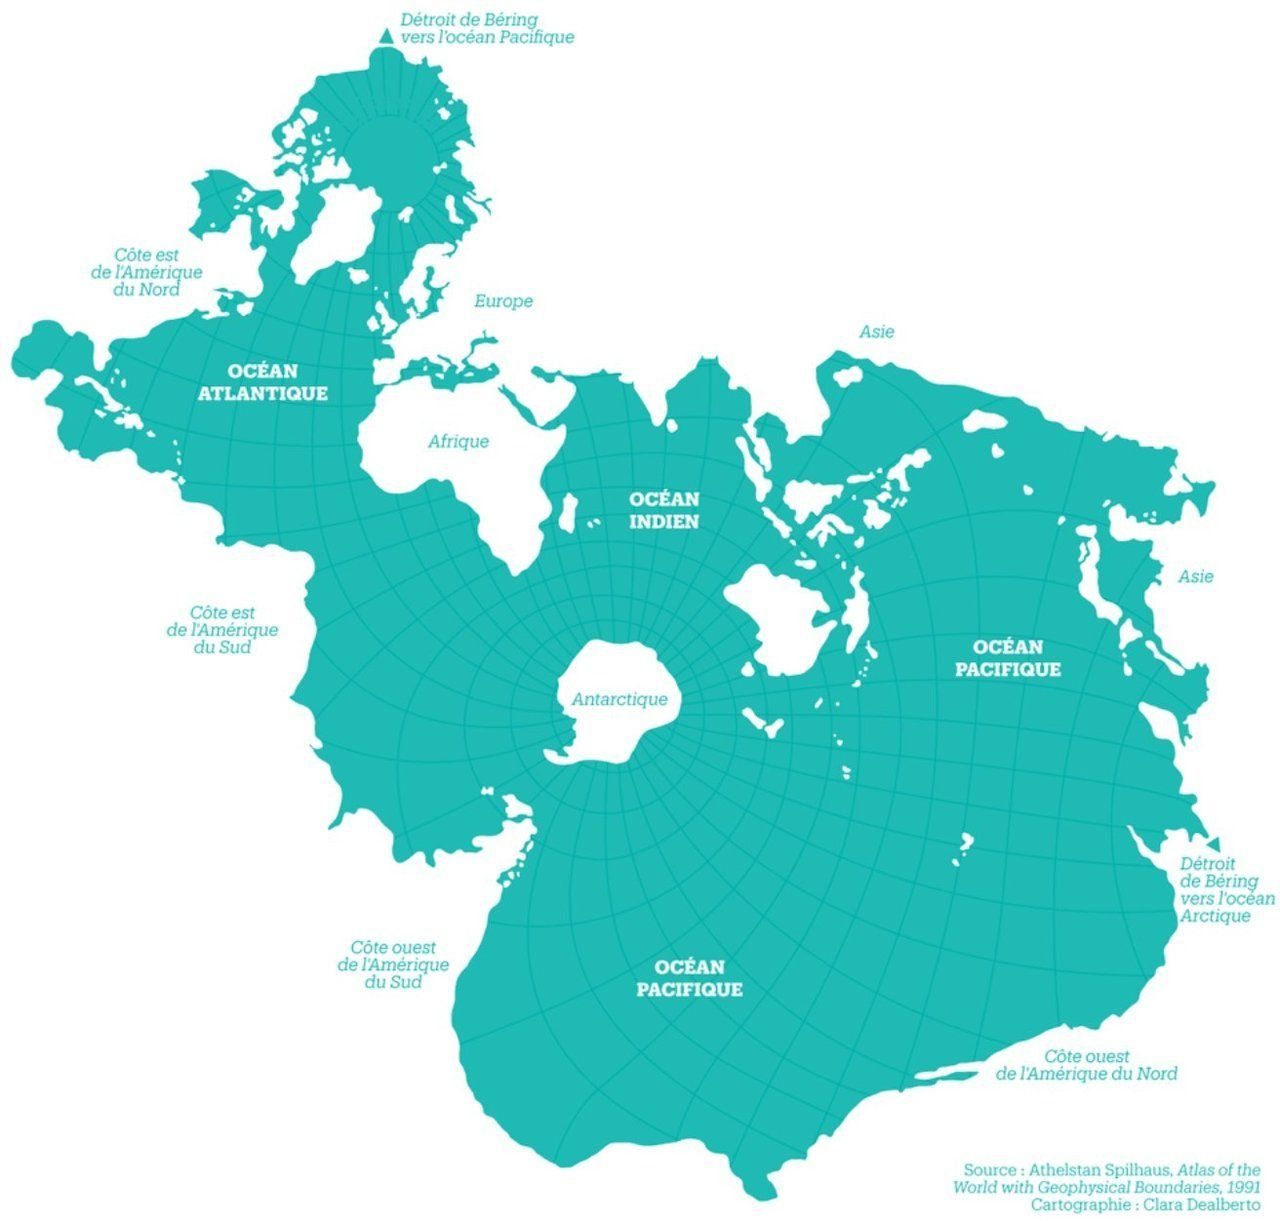 Oceans centered world map. | Maps | Fantasy world map, Map, Building on world globe map, world map with seas labeled, world religion map, world record for, world map with countries,